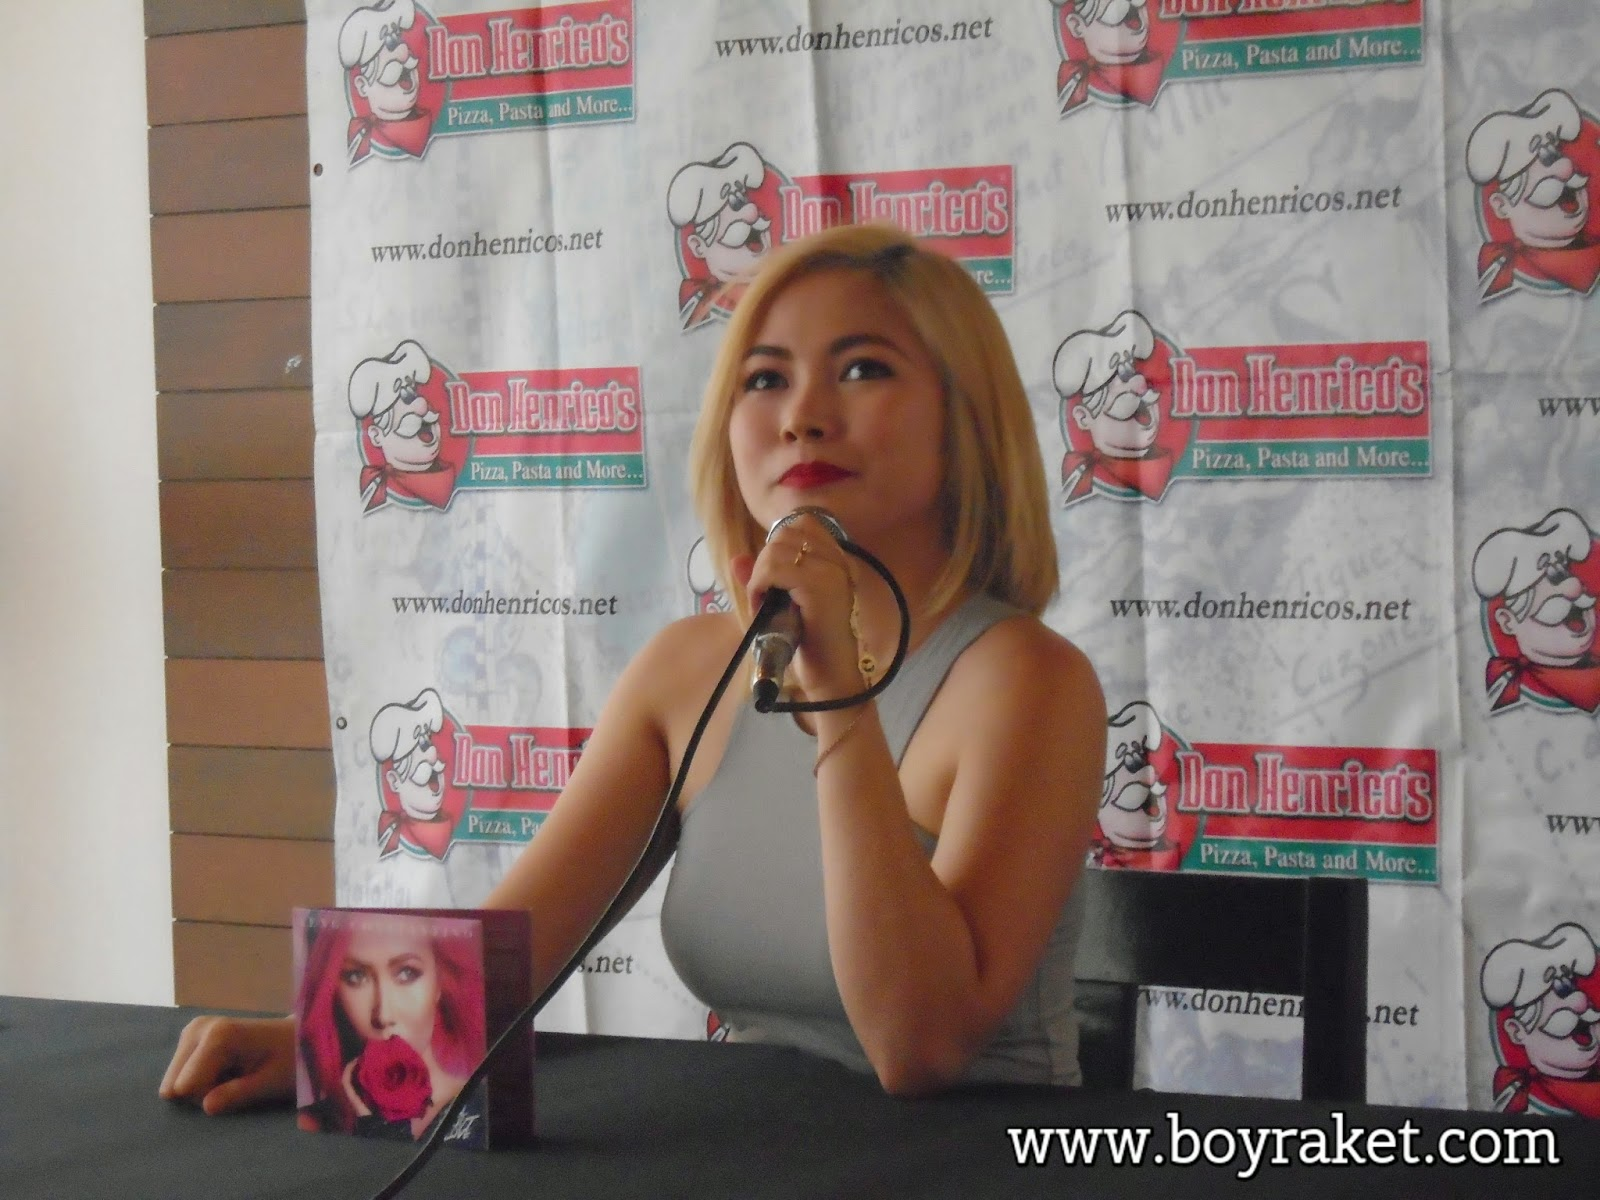 pictures Yeng Constantino (b. 1988)